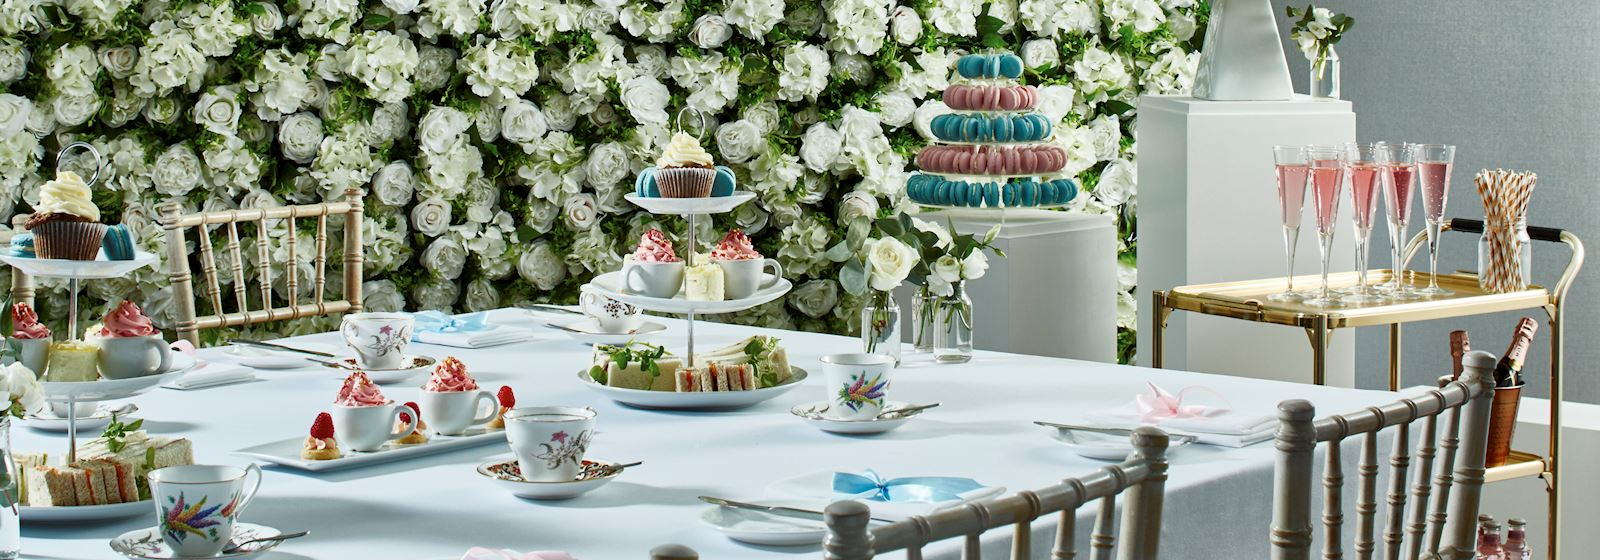 Forest of Arden Marriott Hotel & Country Club Special Occasions